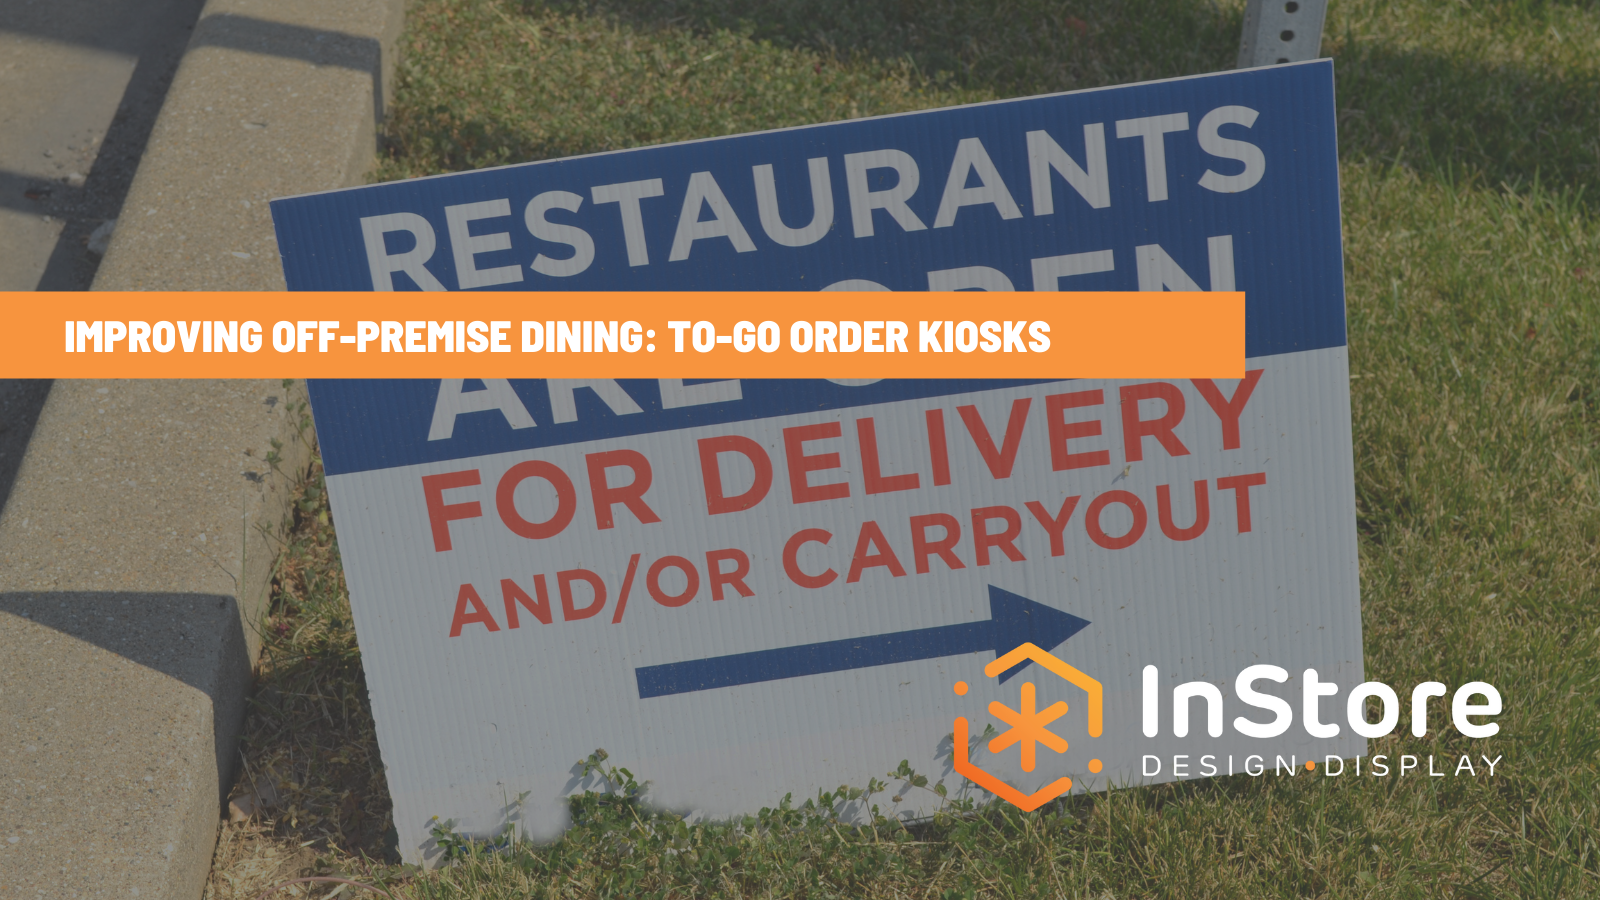 To-Go Order Kiosks: 5 Tips to Make Carryout and Delivery Work Better